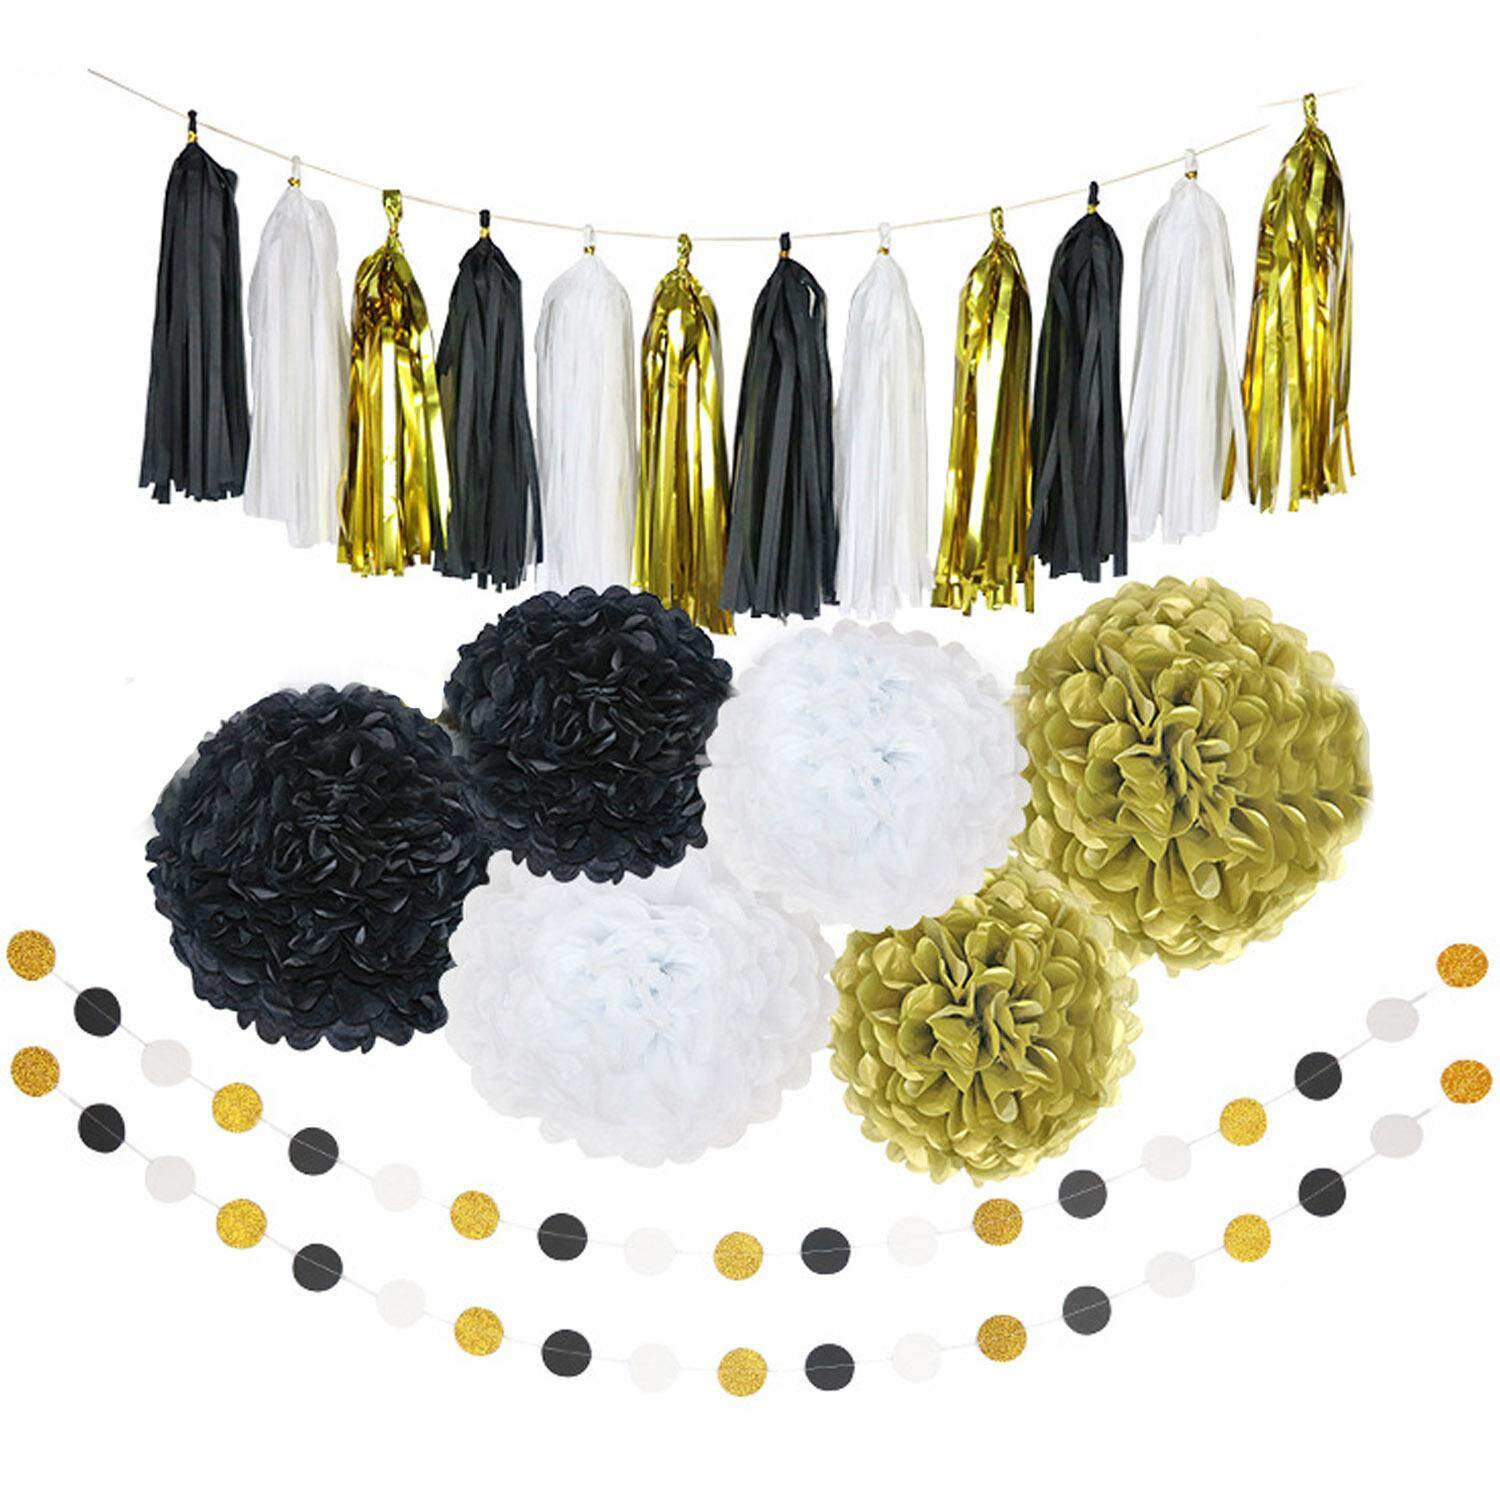 Party supplies buy party supplies at best price in singapore www 20pcs paper decorations set pom poms flower shape paper balls tassels string decorative accessories for pink junglespirit Images